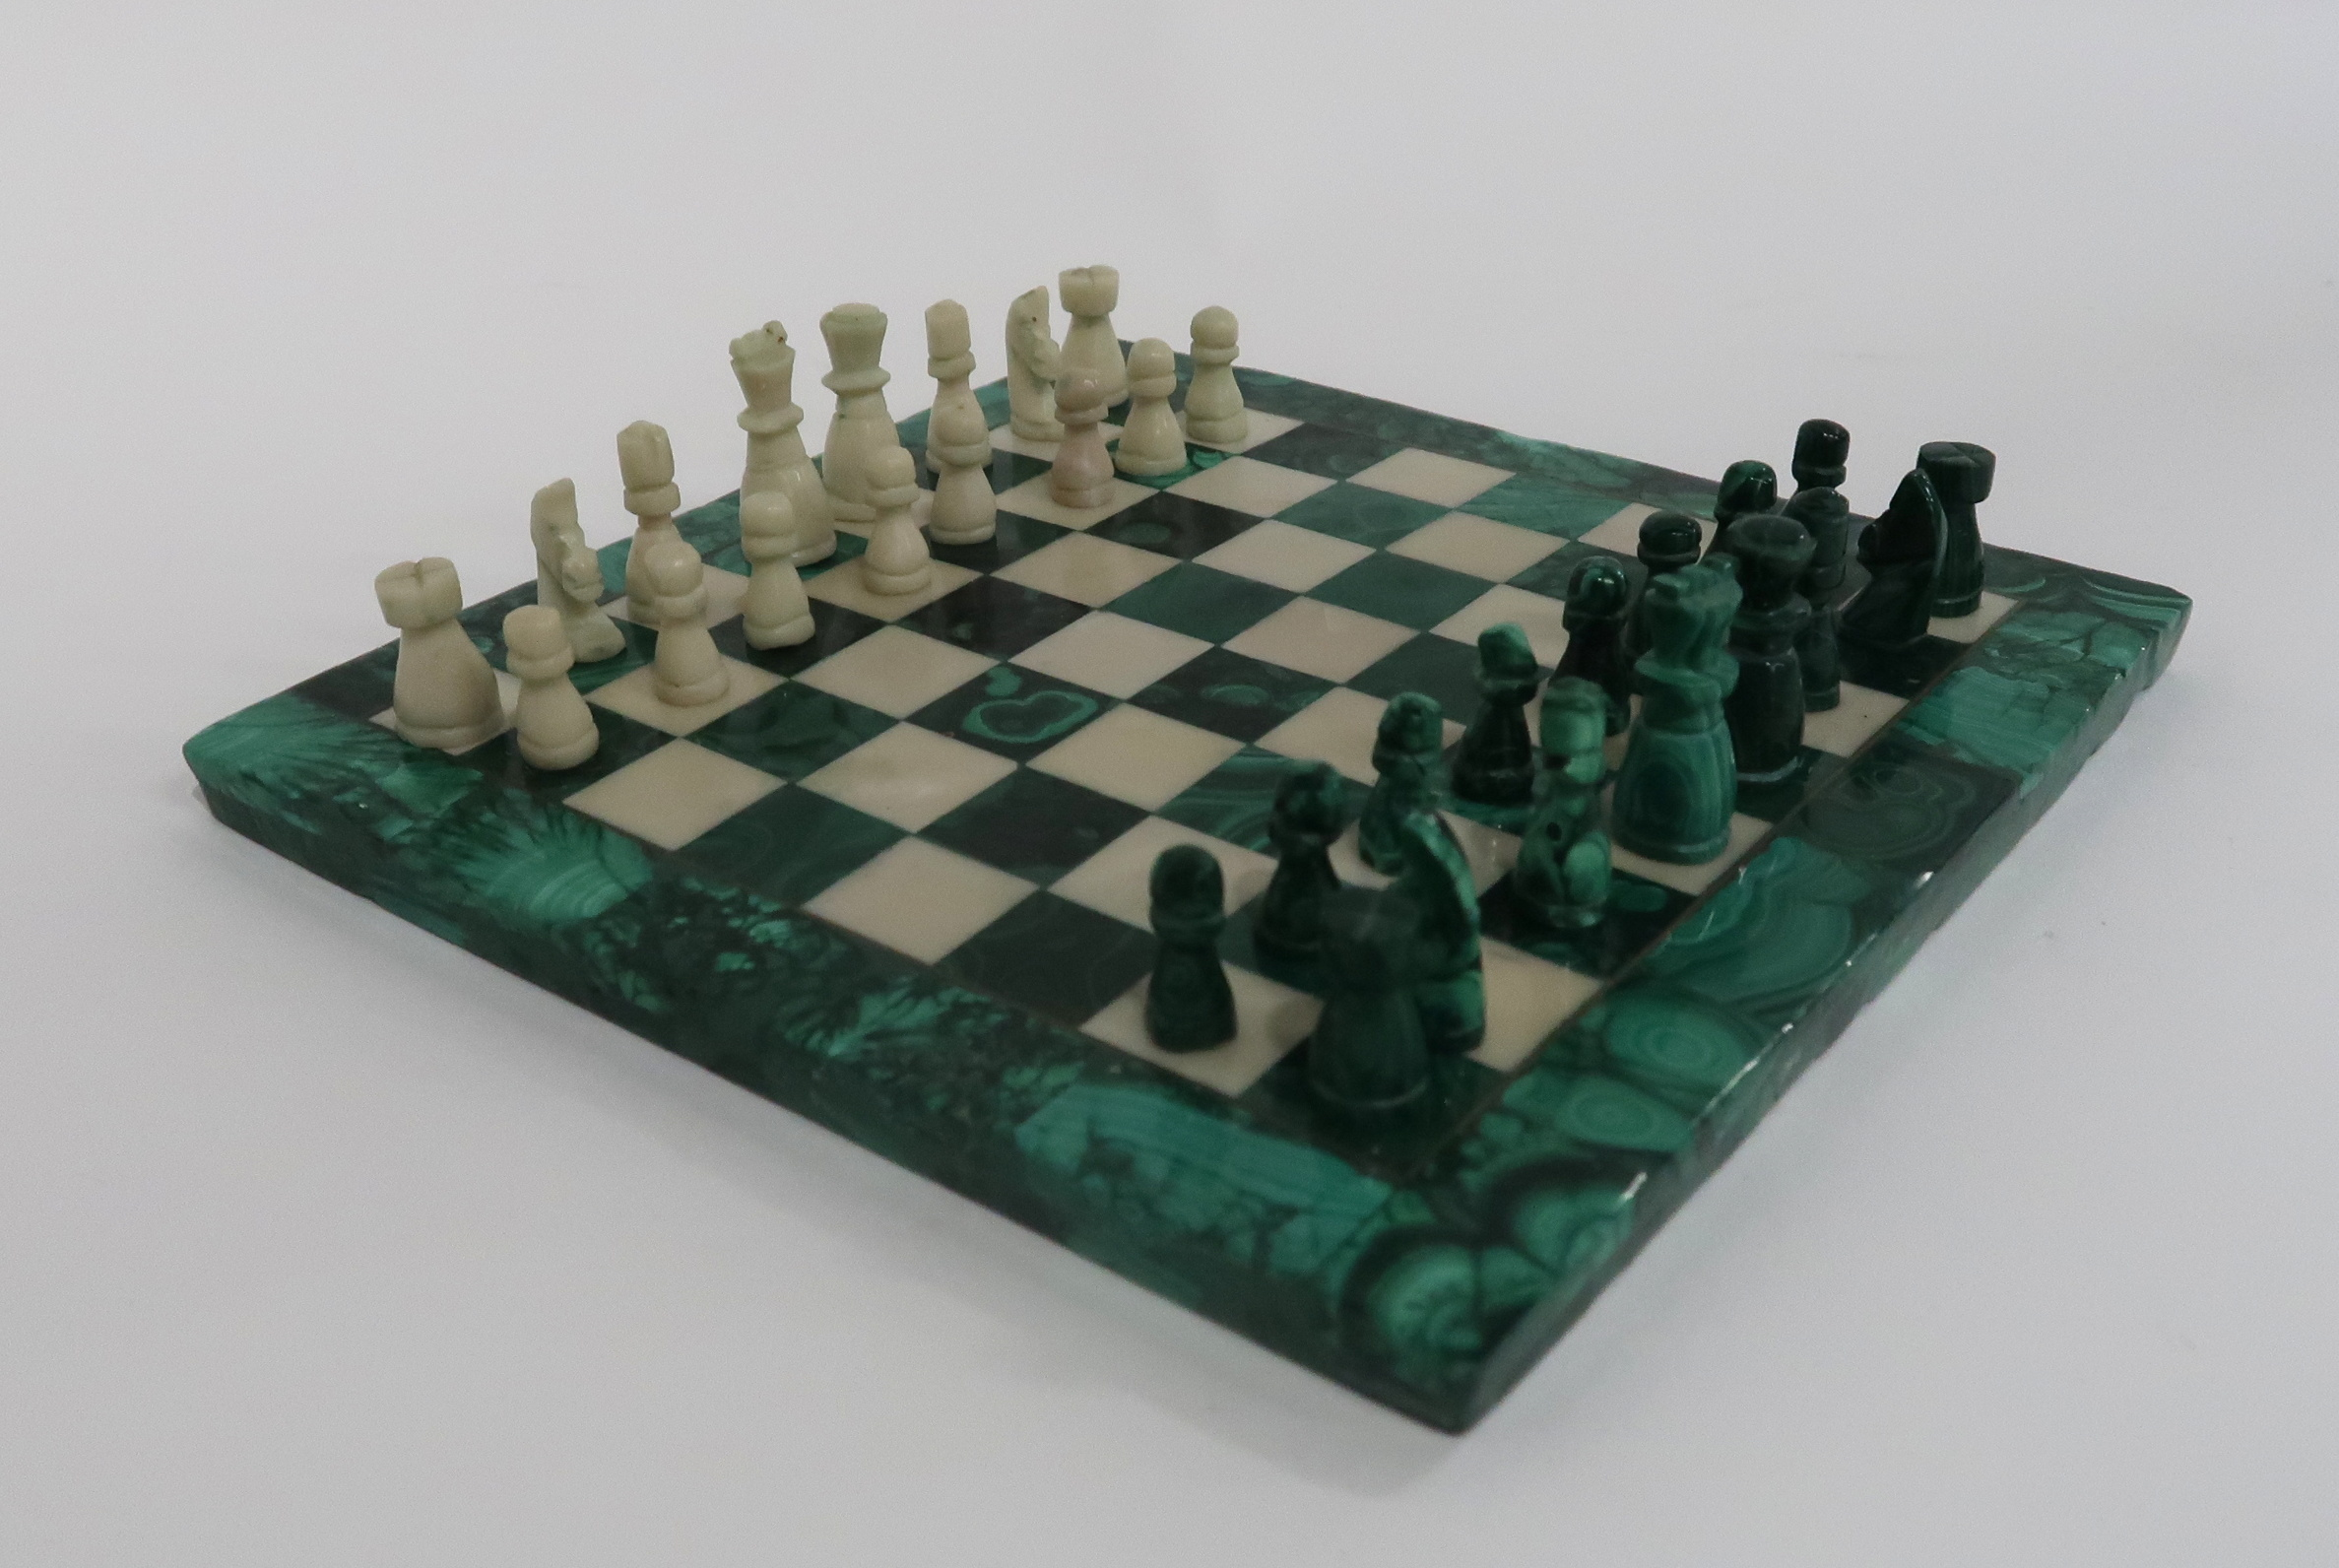 A MINIATURE MALACHITE CHESS SET AND BOARD 19cm square Condition Report: Available upon request - Image 2 of 3